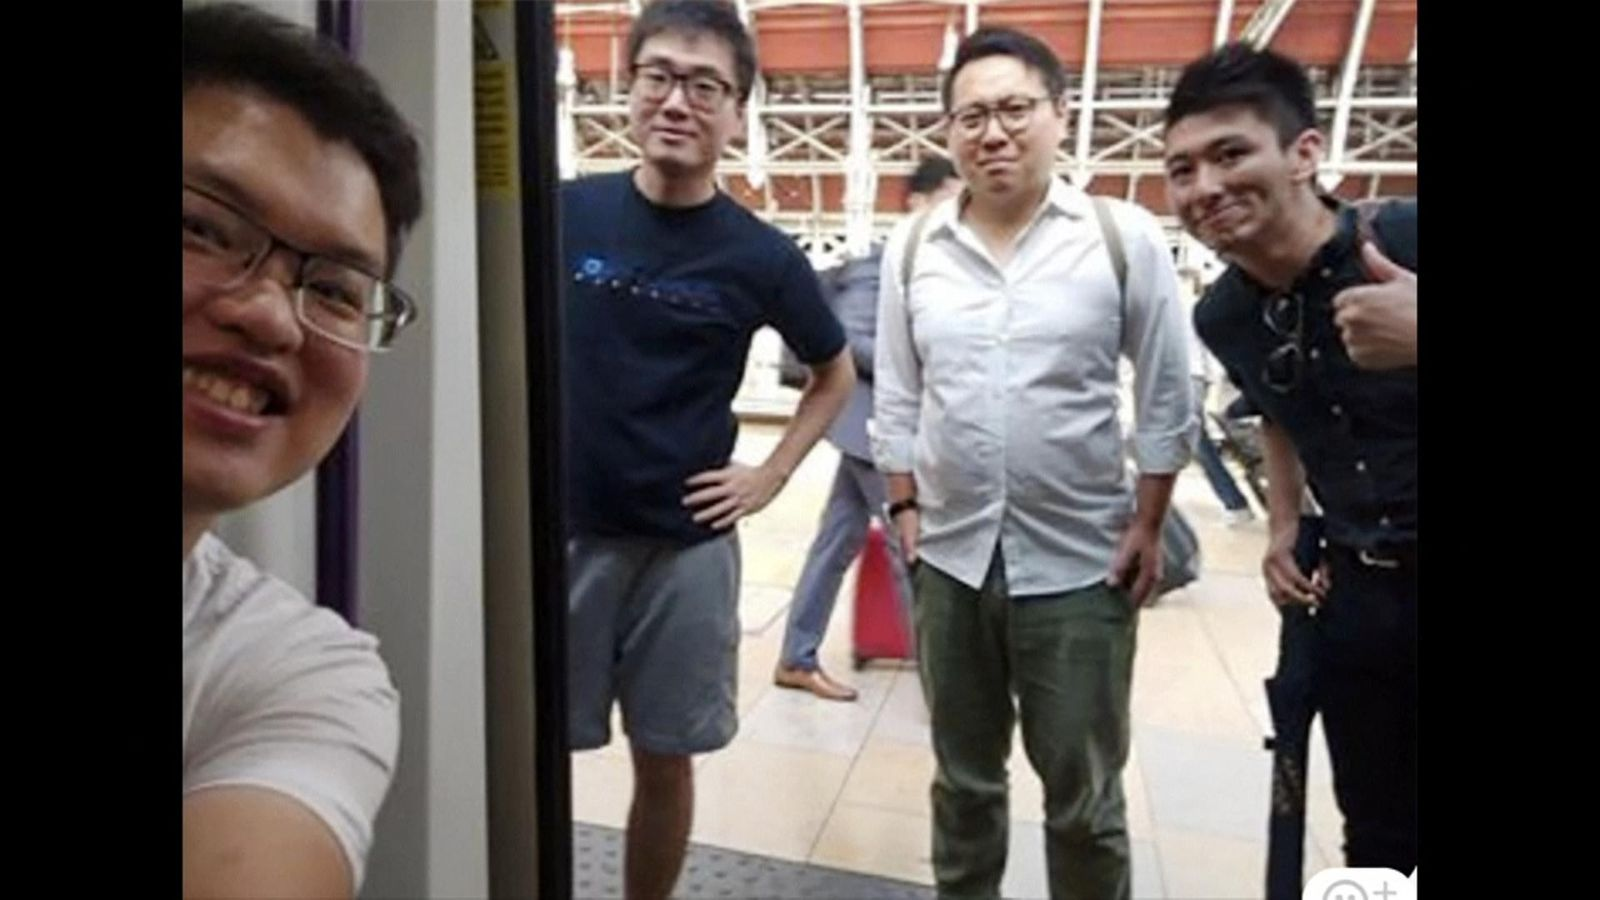 Simon Cheng: British consulate worker freed by China as Hong Kong protests continue